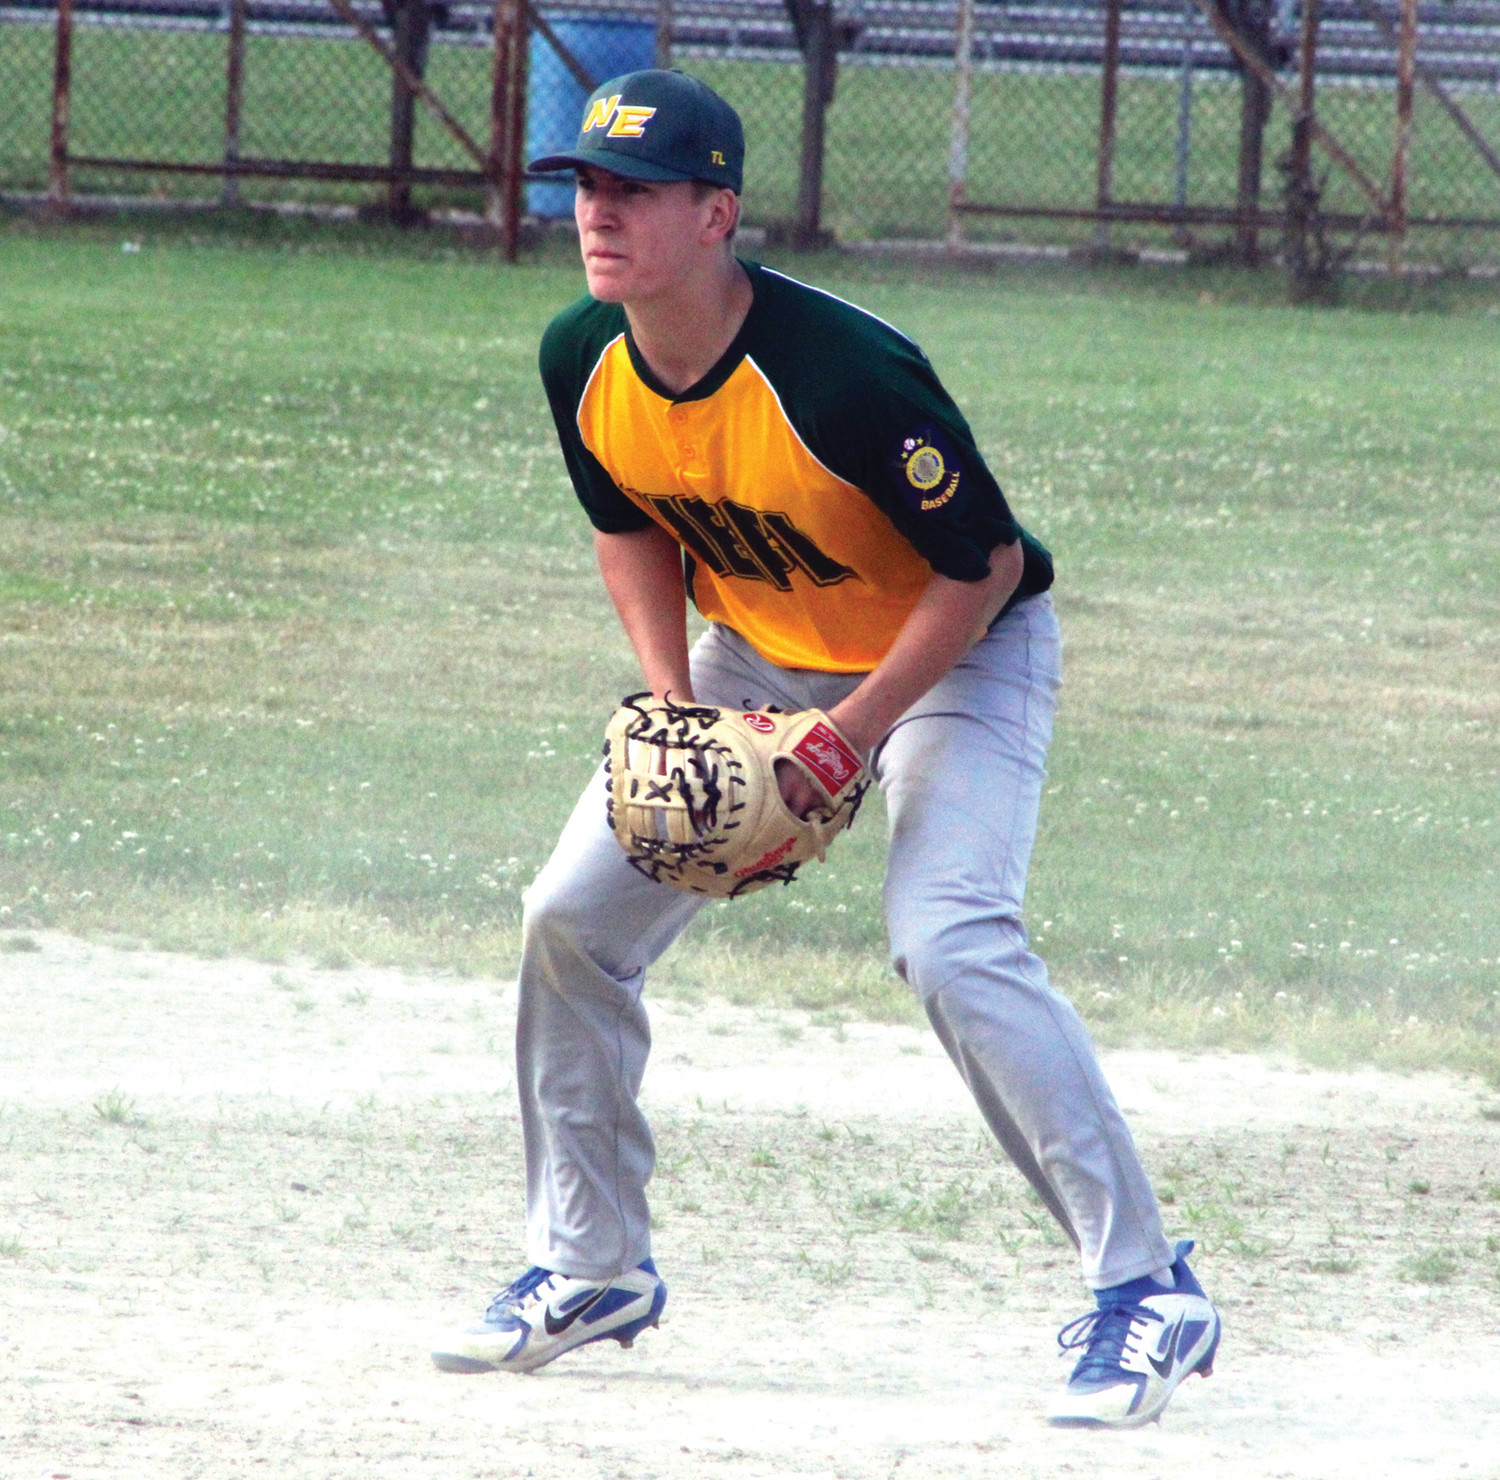 PLAYING THE FIELD: NEFL first baseman Caden Haley prepares to make a play in the field.